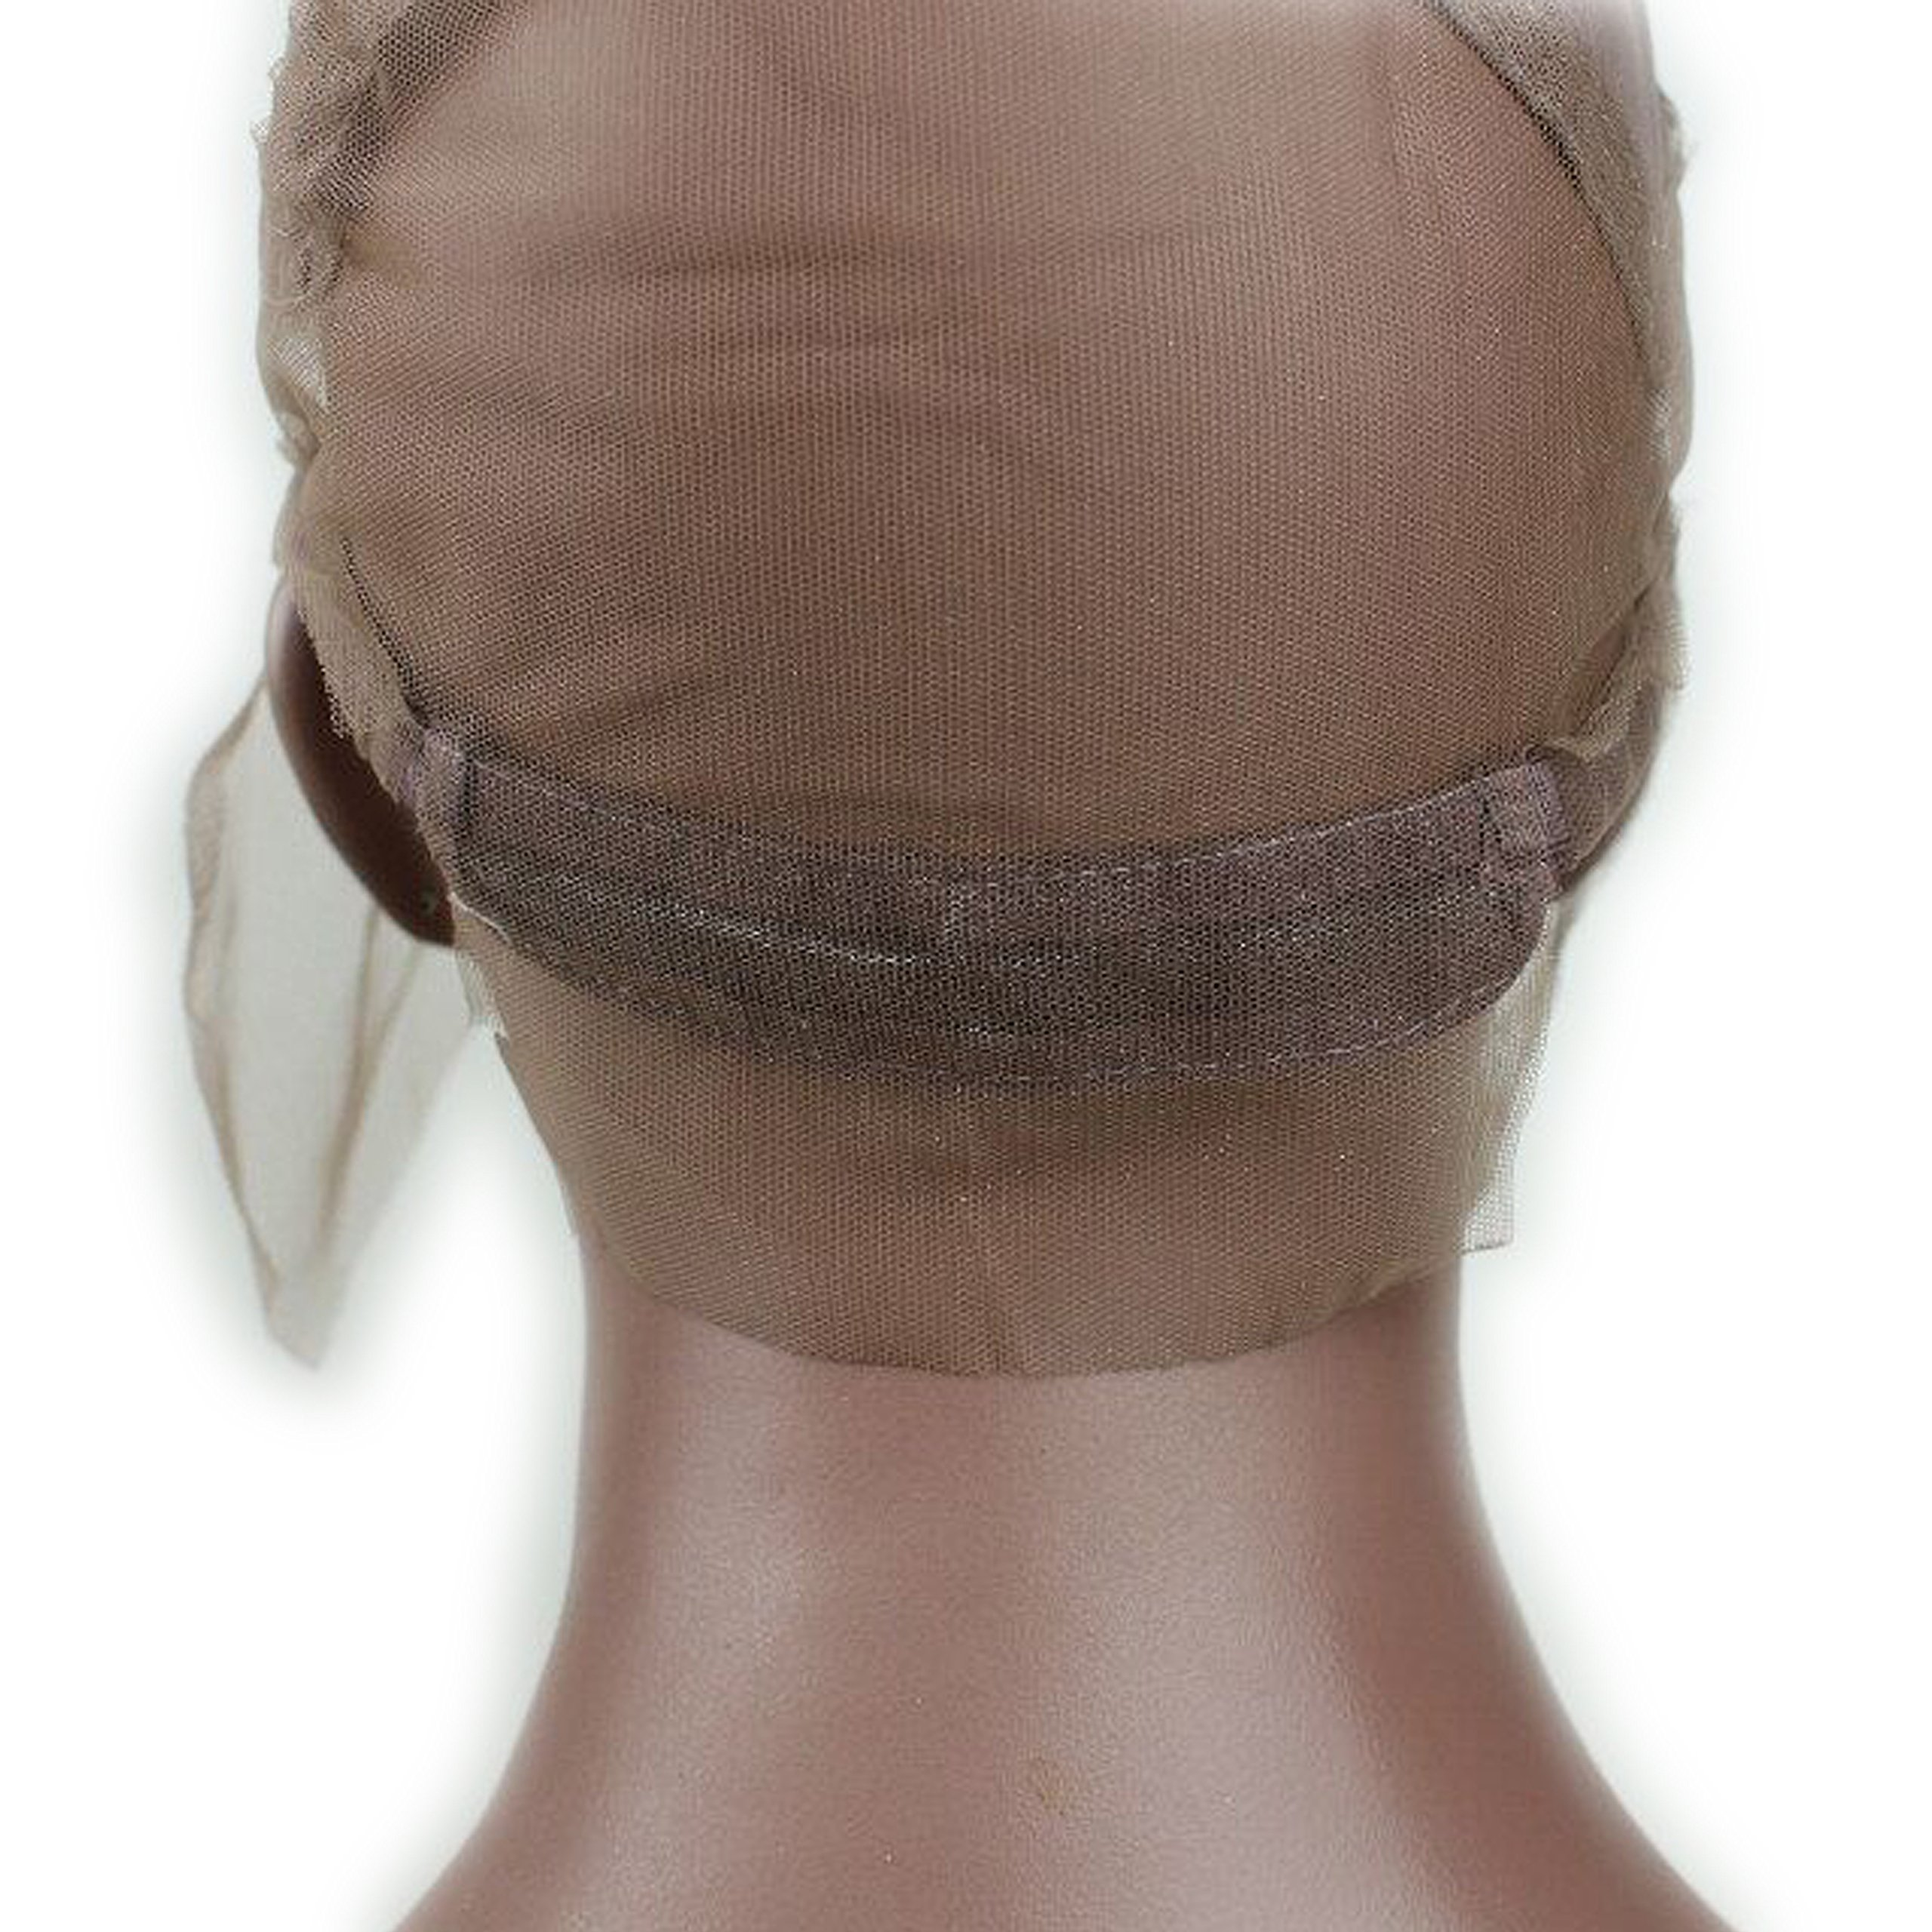 Dreambeauty Full Lace Wig Cap for Making Wigs Swiss and French Lace Hair Net with ear to ear Stretch Medium Brown Color for Wig Making (Full Lace Cap with Adjustable Straps) by Dream Beauty (Image #7)